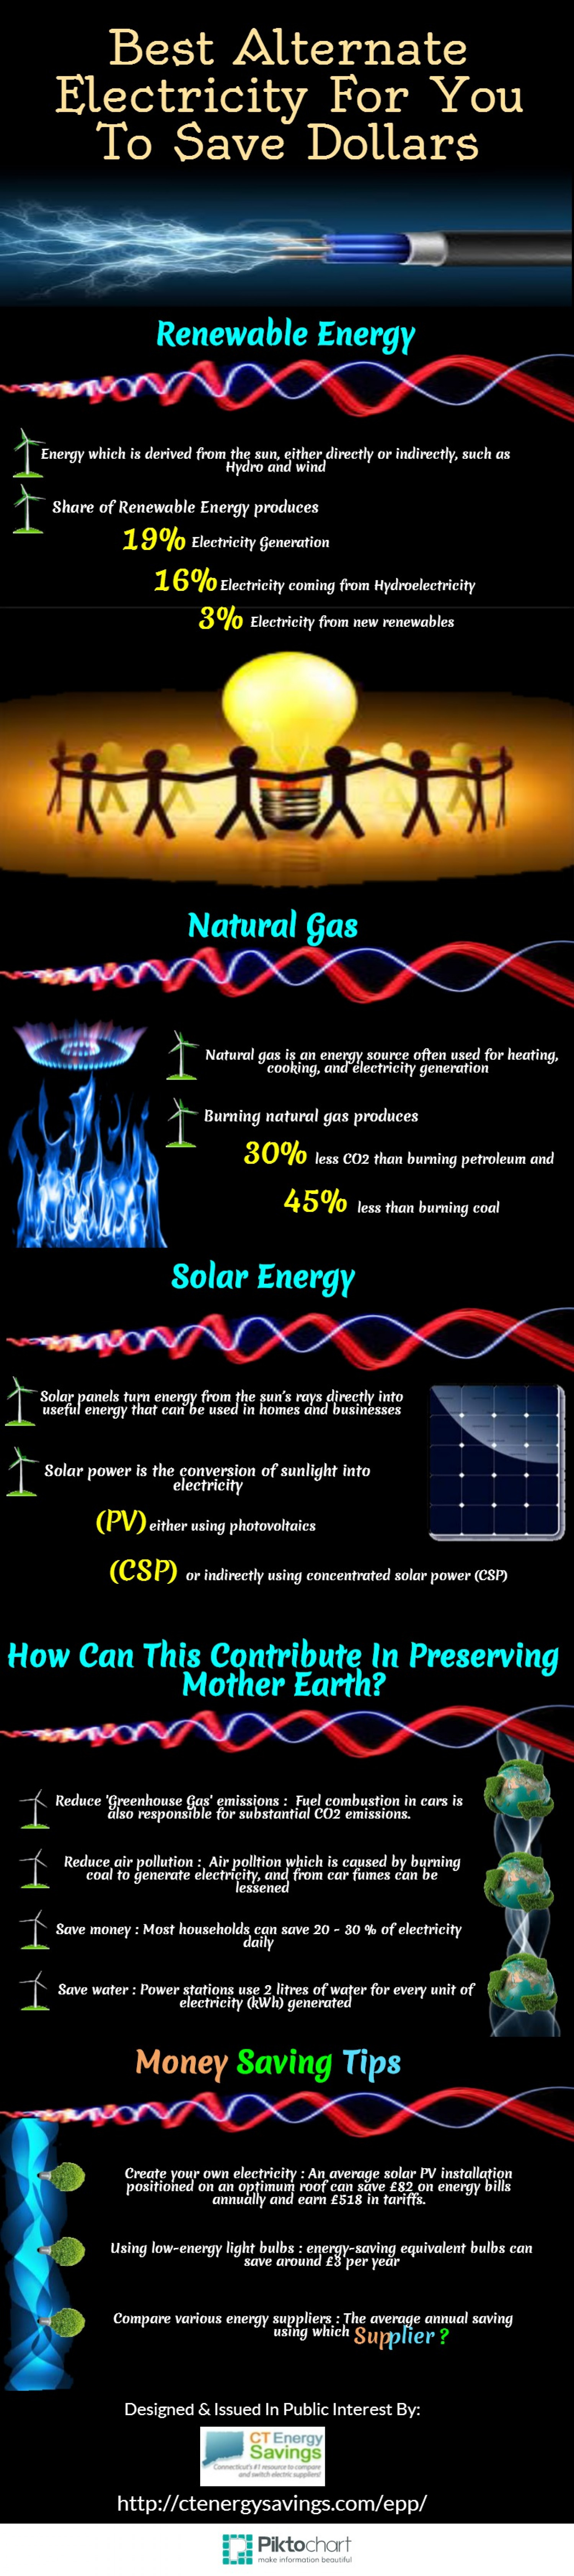 Best Alternate Electricity For You To Save Dollars Infographic